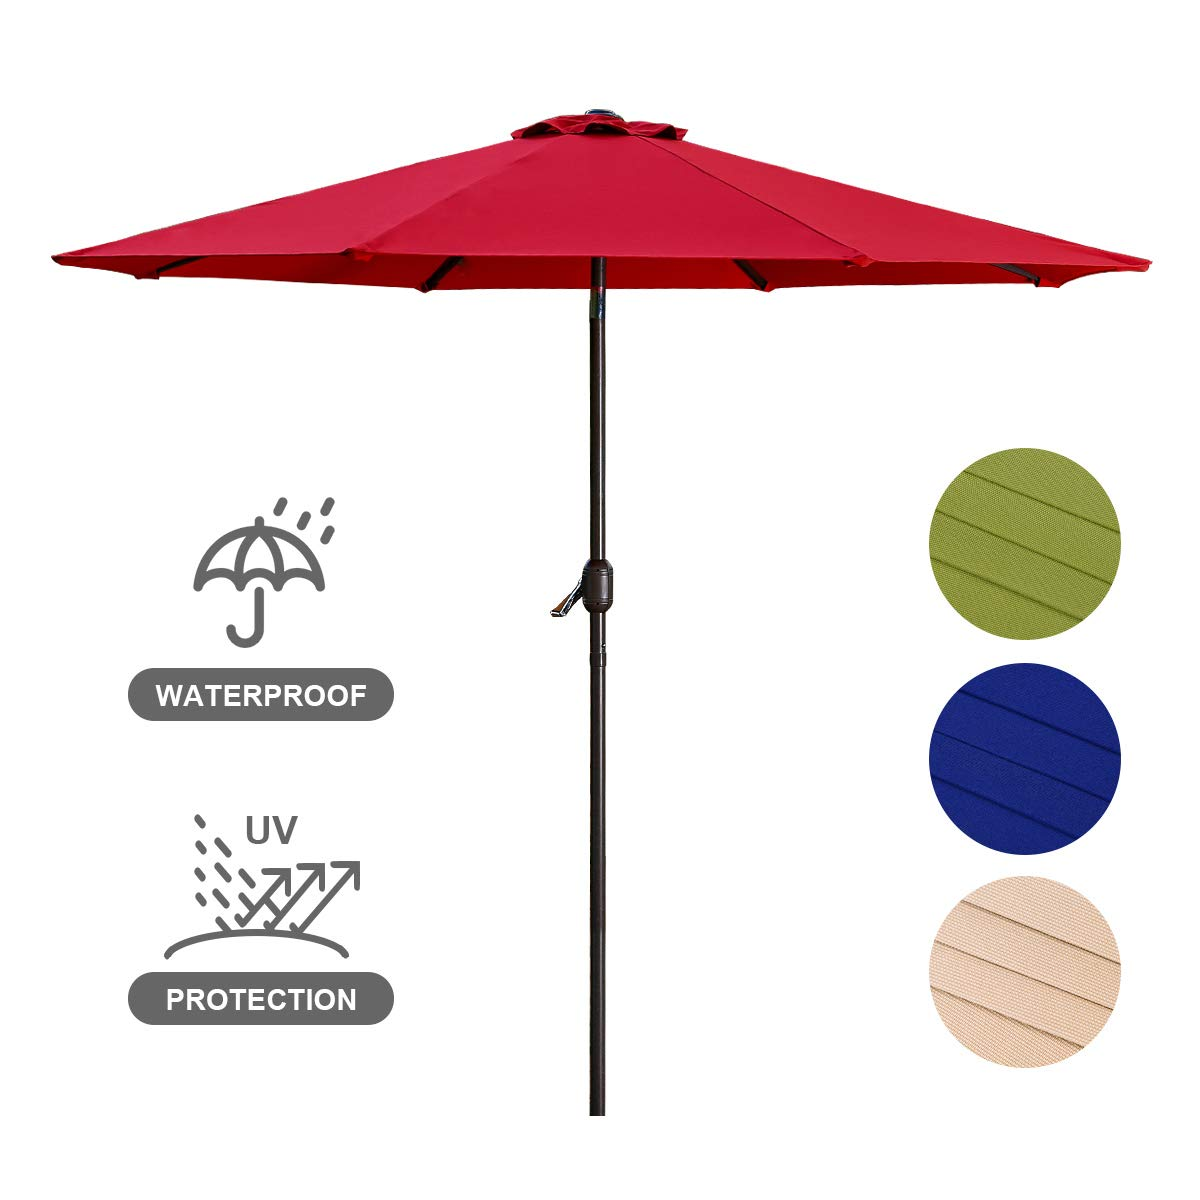 Patio Umbrella 9FT Upscale Garden Table Umbrella with 8 Sturdy Steel Ribs Crank System and Angle Tilt Adjustment Function, 220g Polyester Material, Shade Weatherproof Cover-Red by USspous